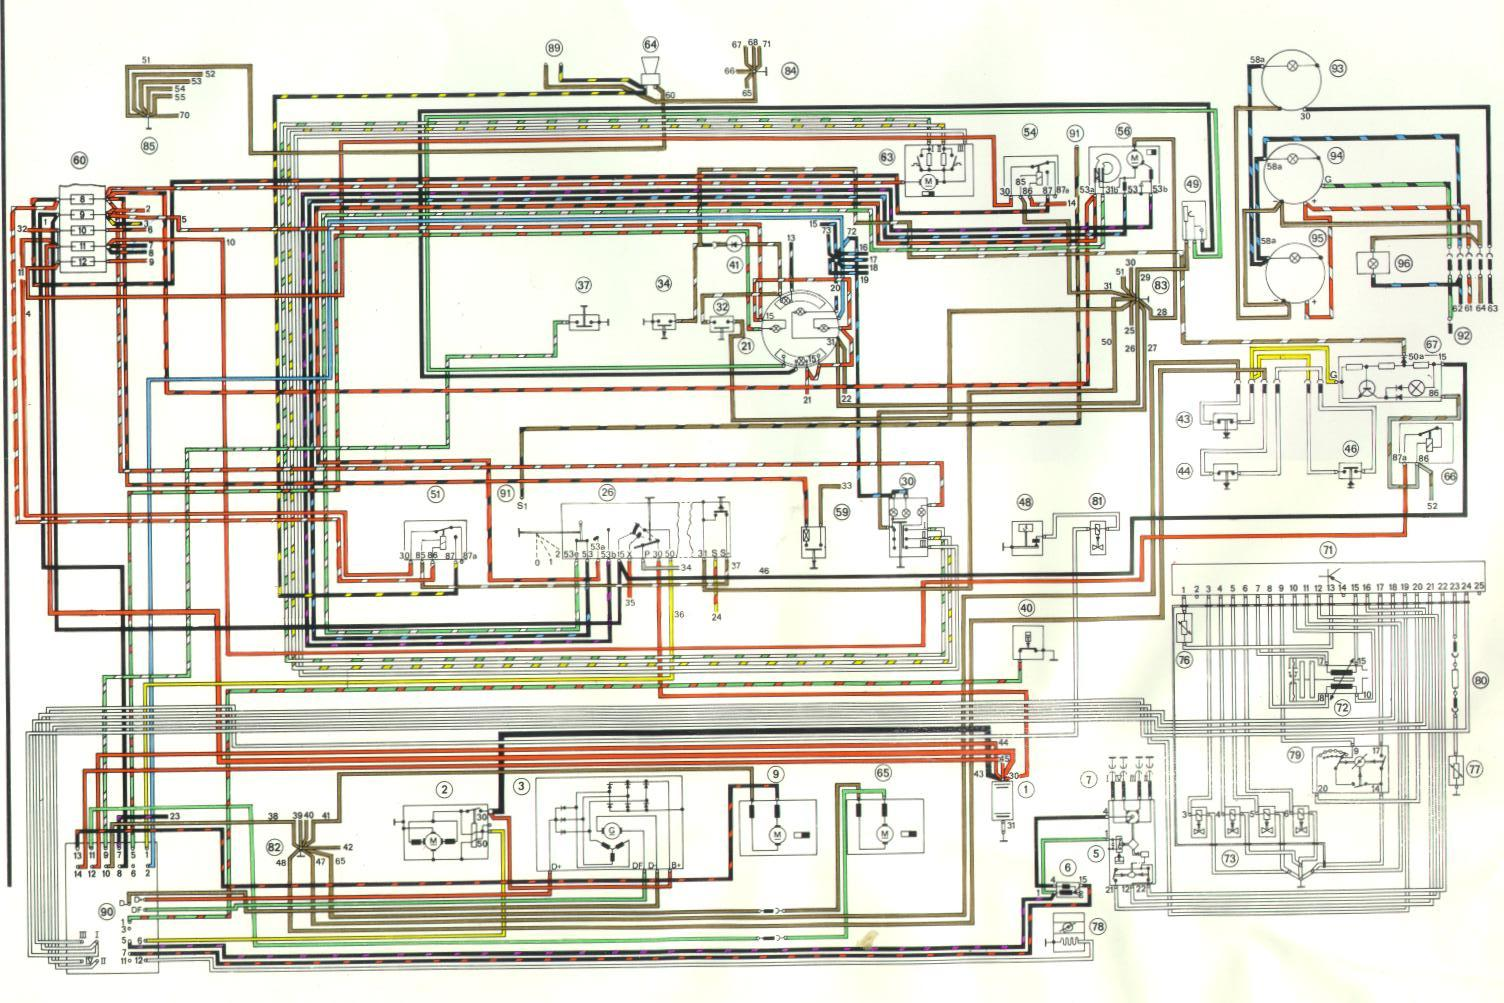 83 Porsche 944 Wiring Diagram - All Diagram Schematics